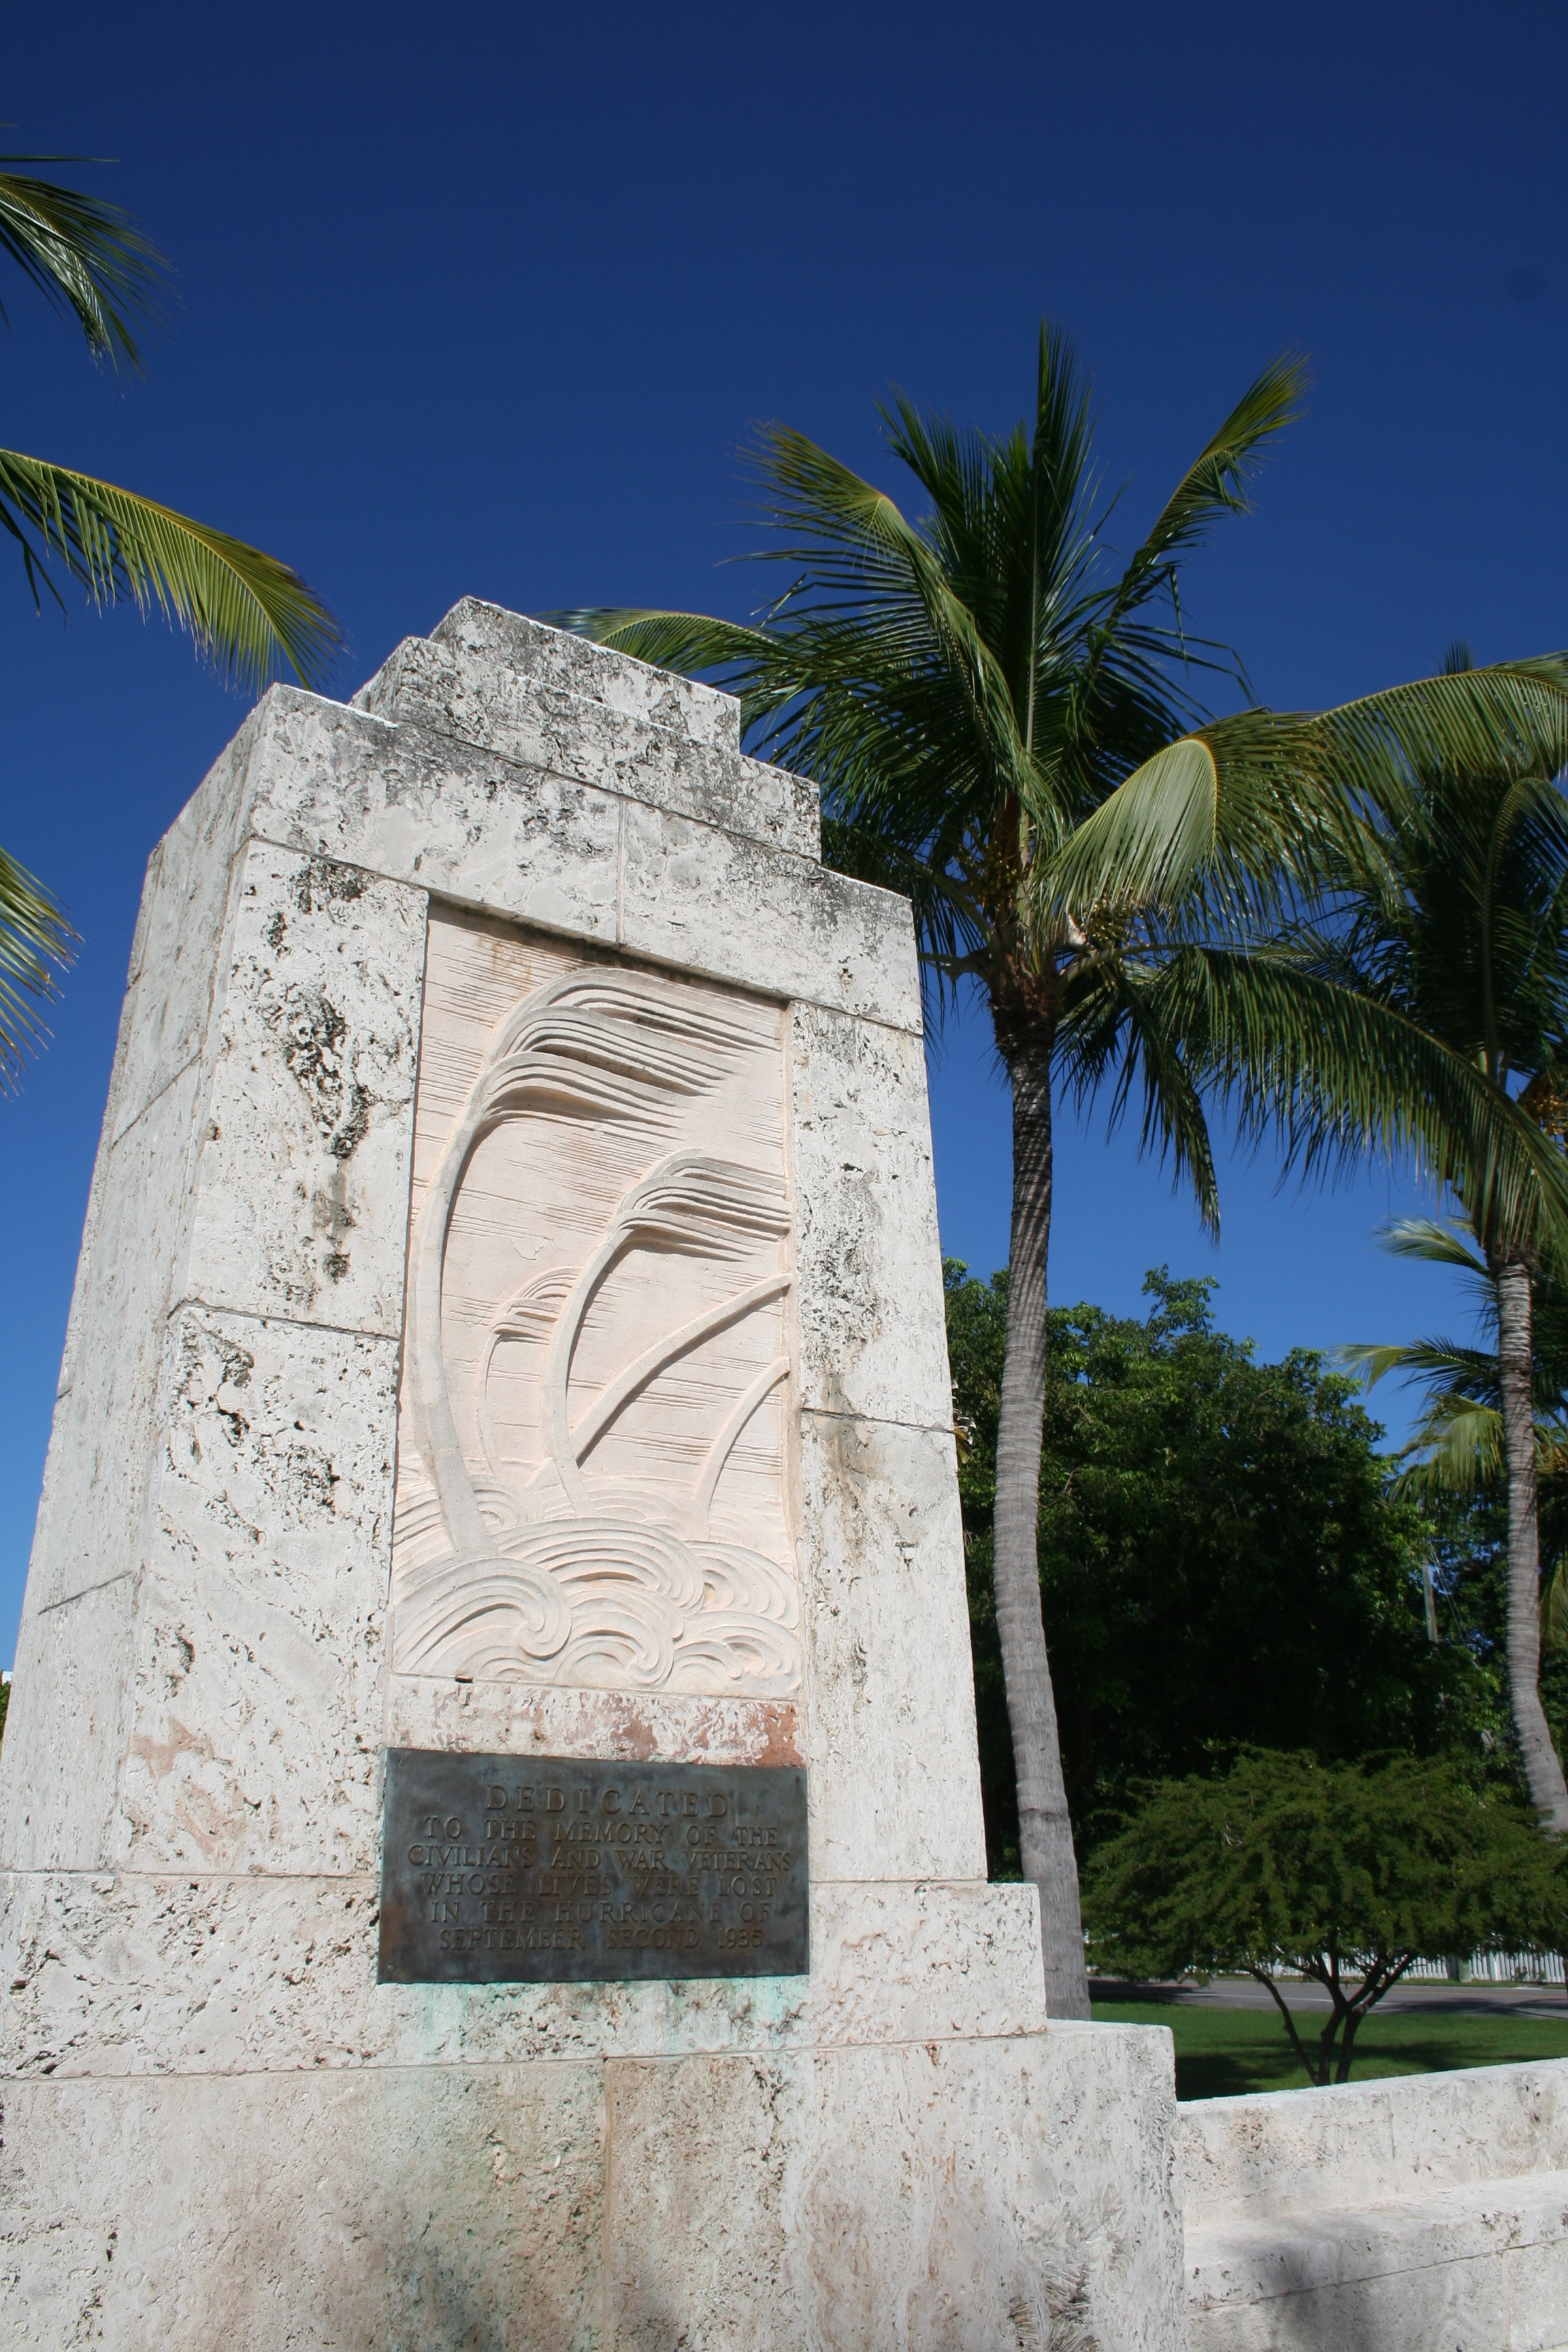 The Hurricane Memorial on Upper Matecumbe is also a crypt containing the remains of some storm victims. Every Labor Day, a service is held there in their memory. Photo by Nancy Klingener.